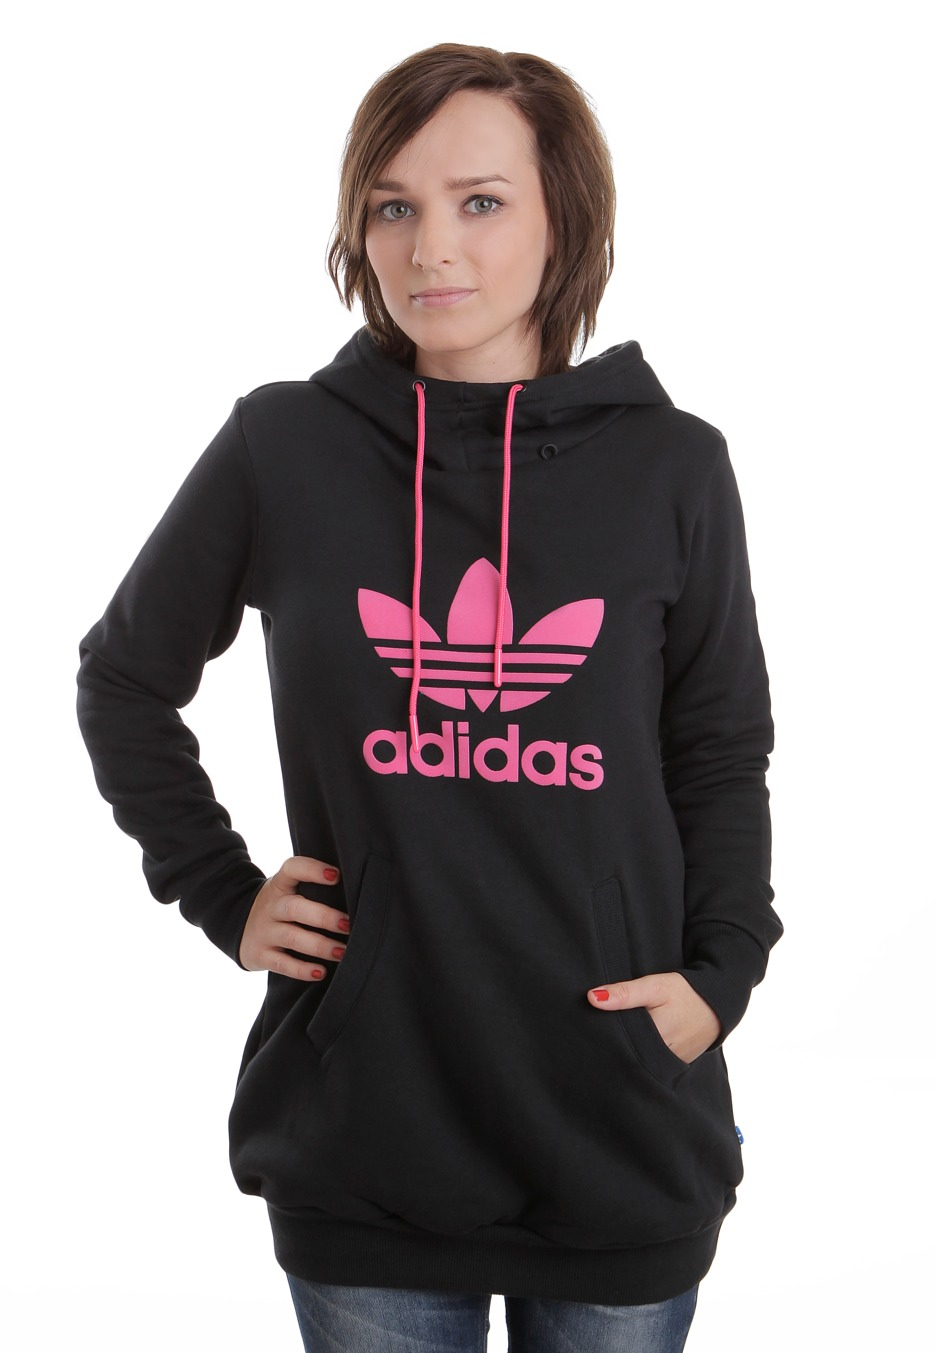 Adidas hoodie girls for Adidas hardcourt waxy crafted